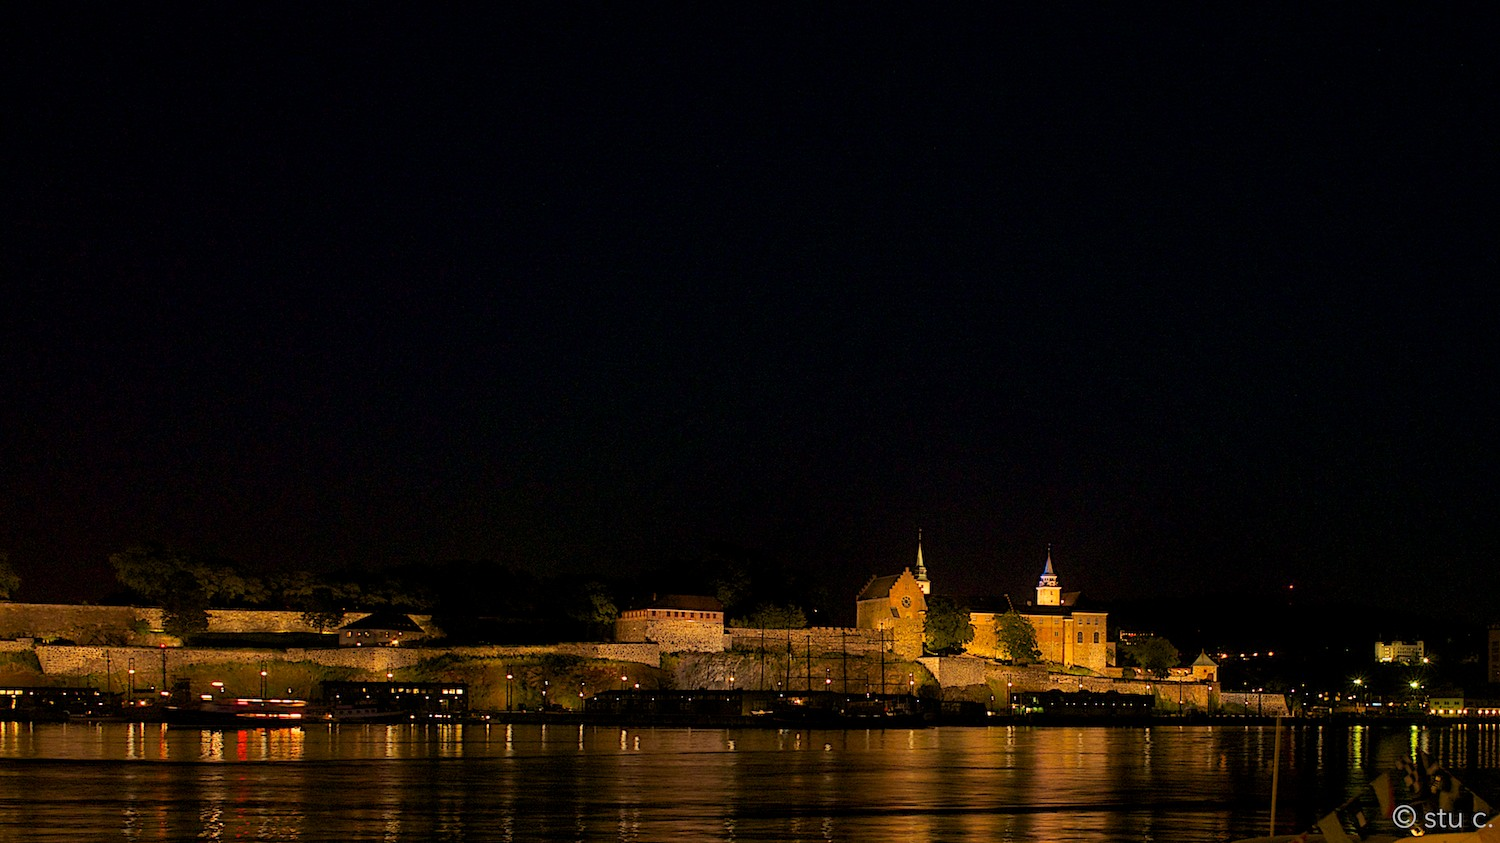 This night view of Akerhus was actually taken on our last night in Oslo, a week after first visiting the fortress.